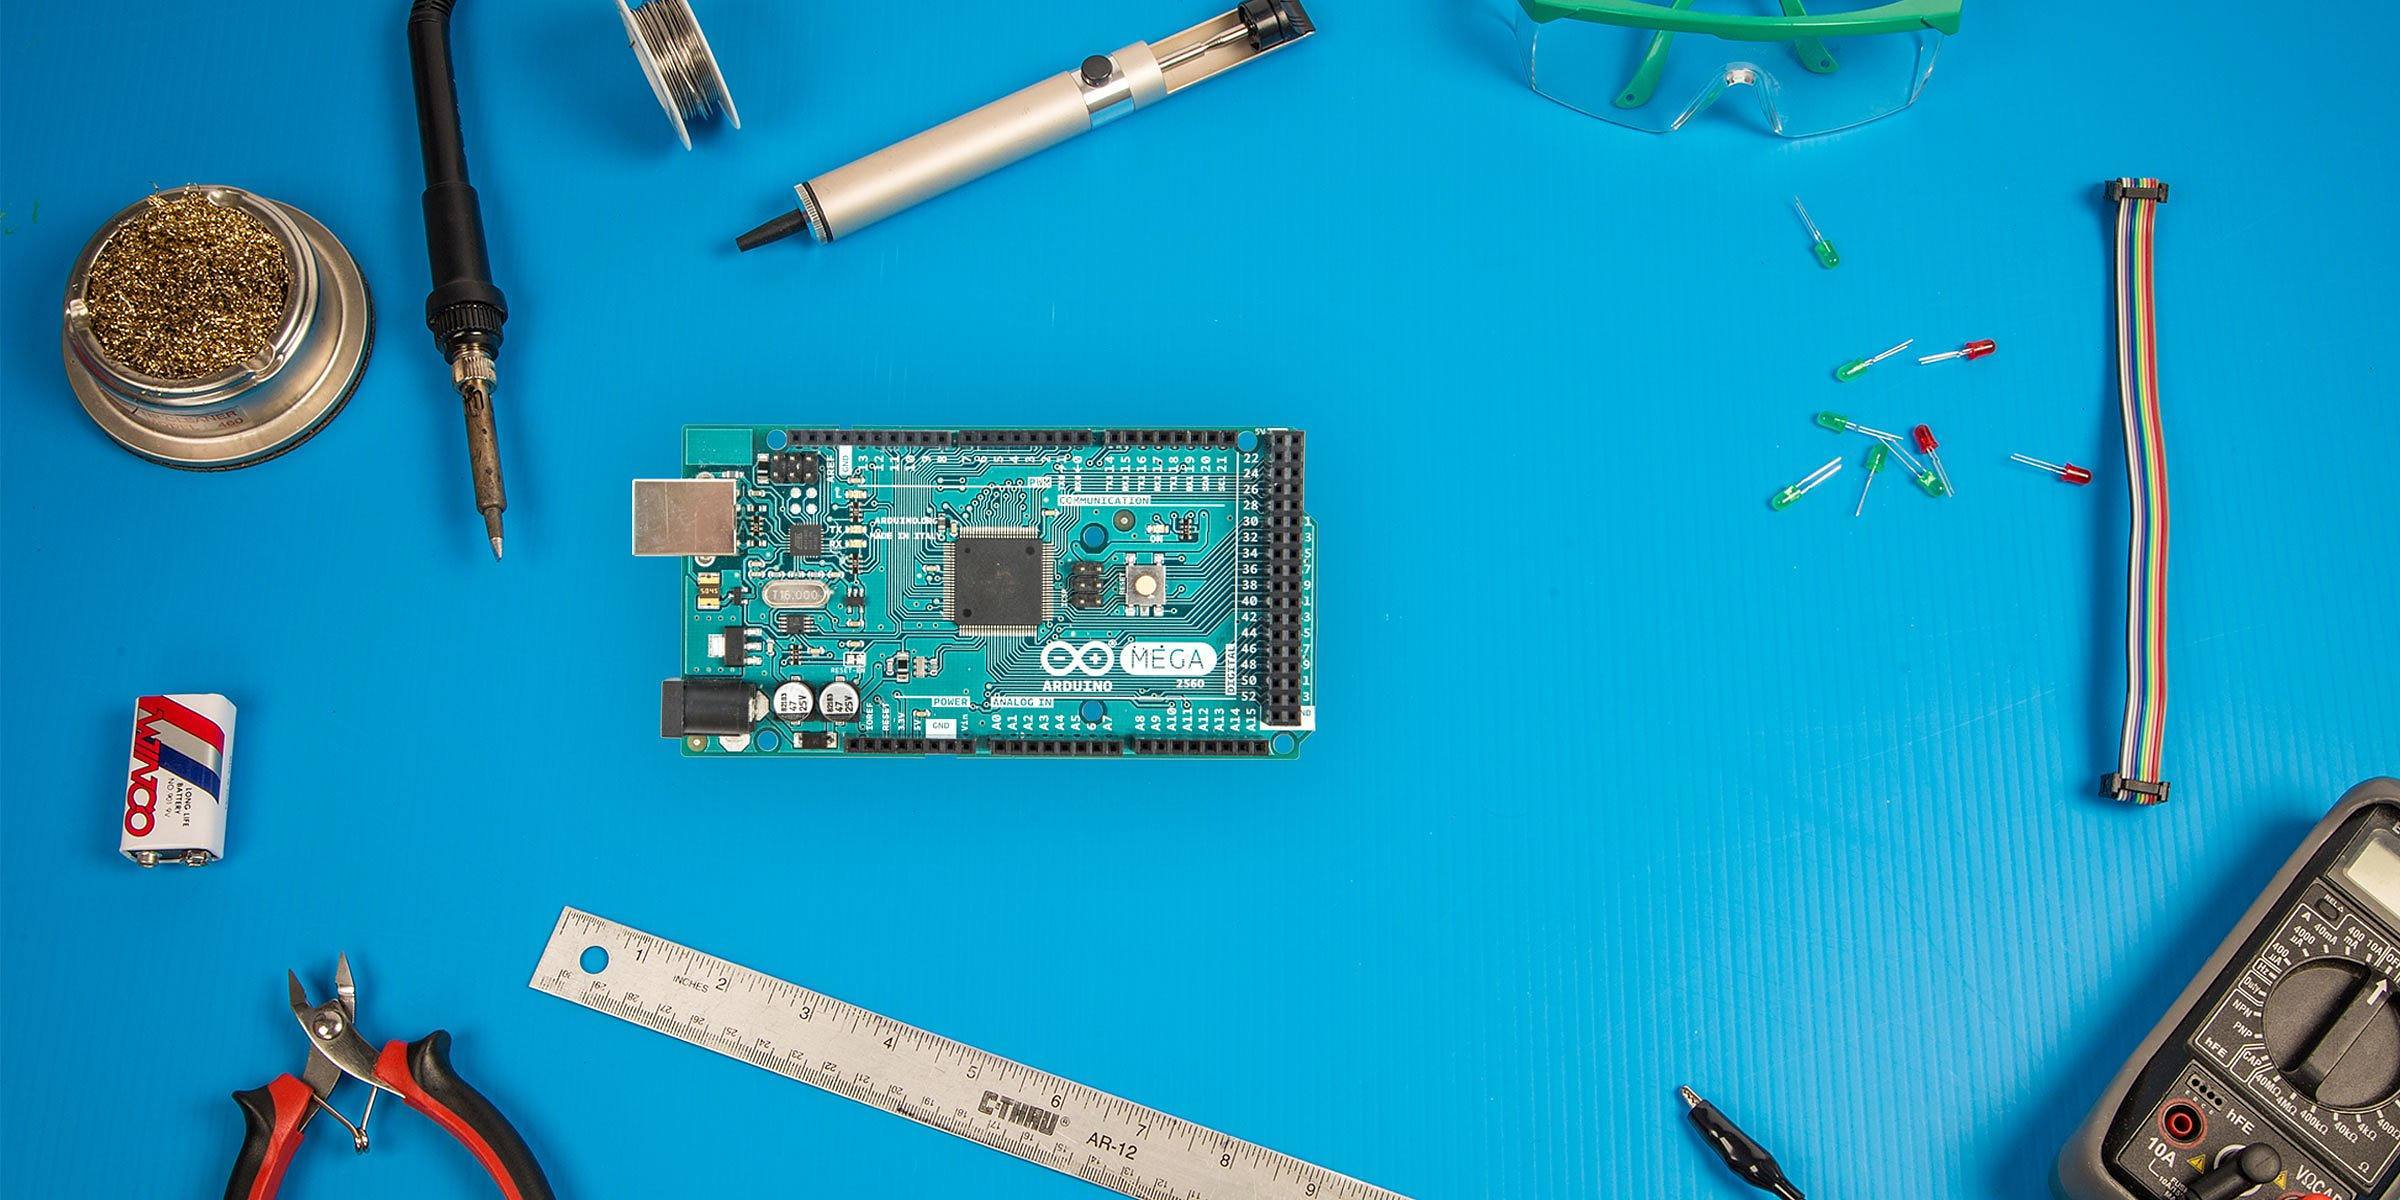 Show Us Your Arduino Projects with #MakeArduino